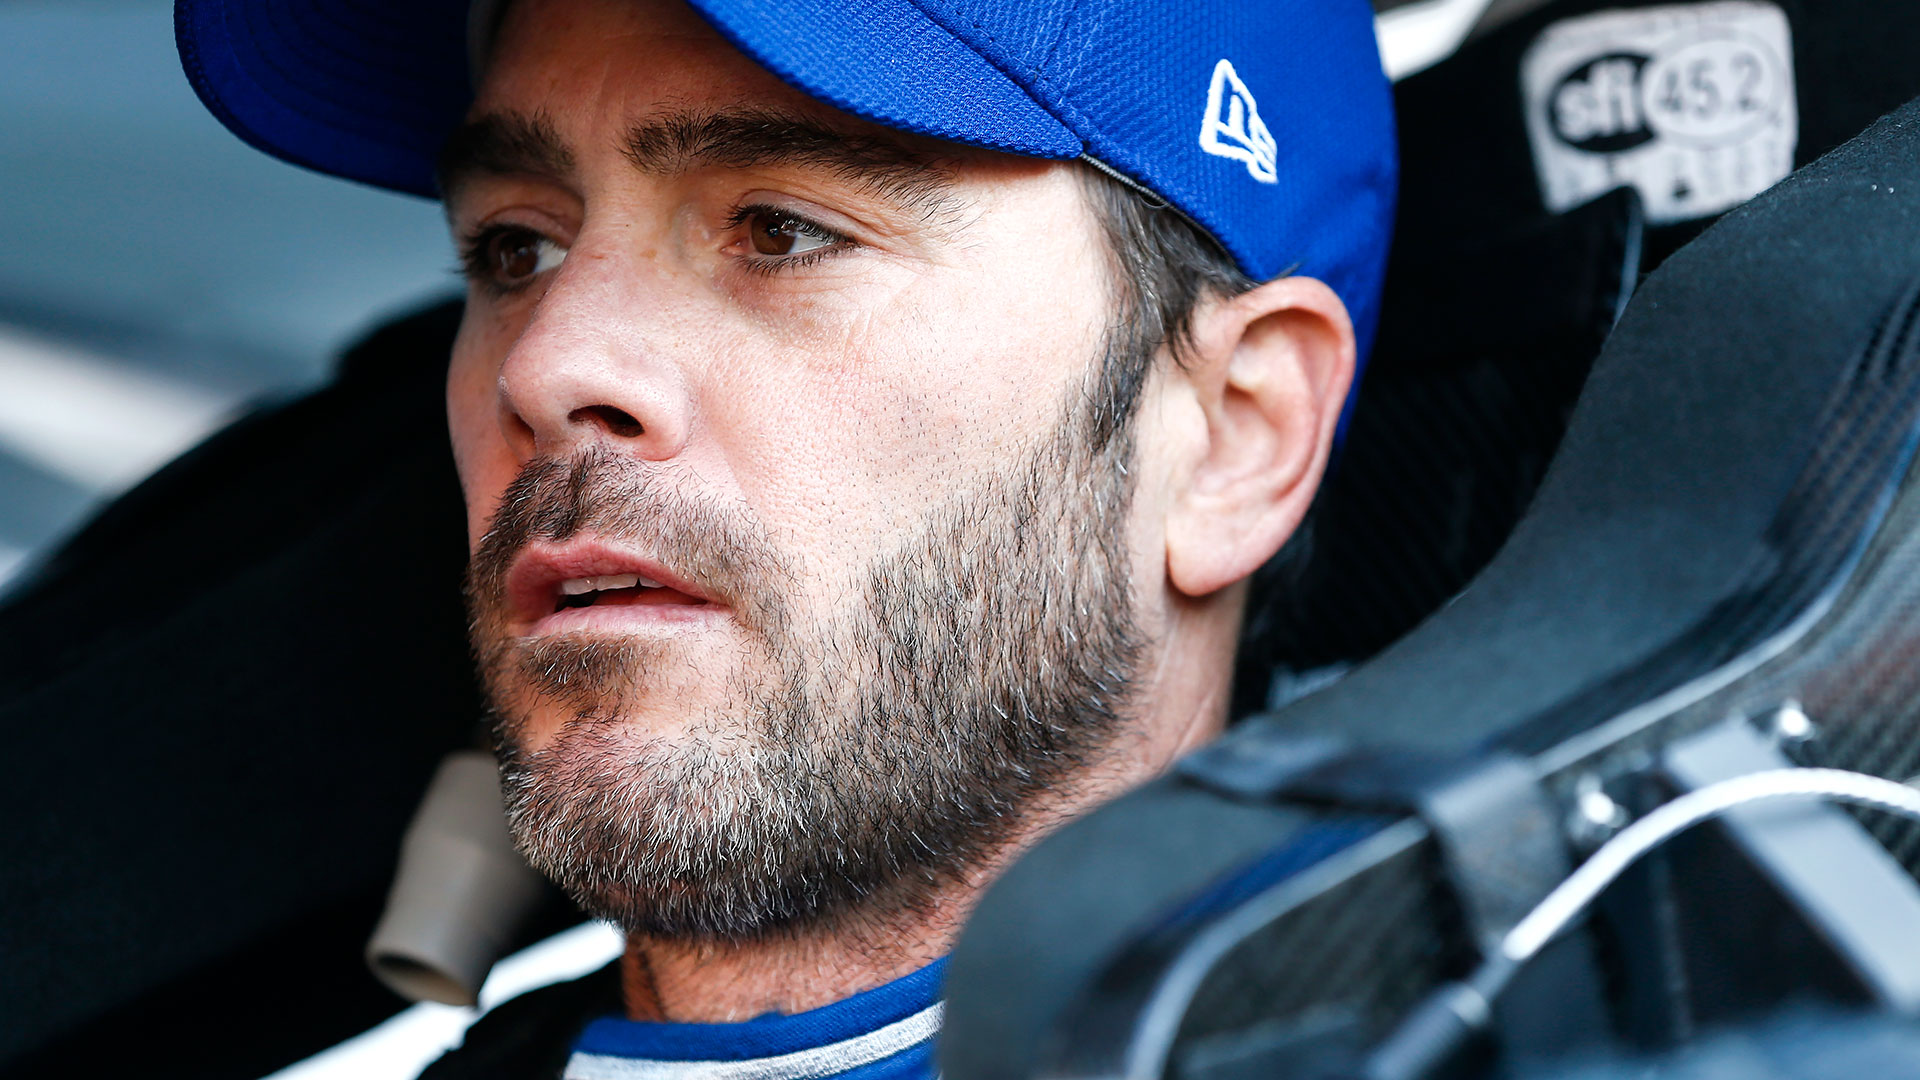 Jimmie Johnson not happy with latest penalty